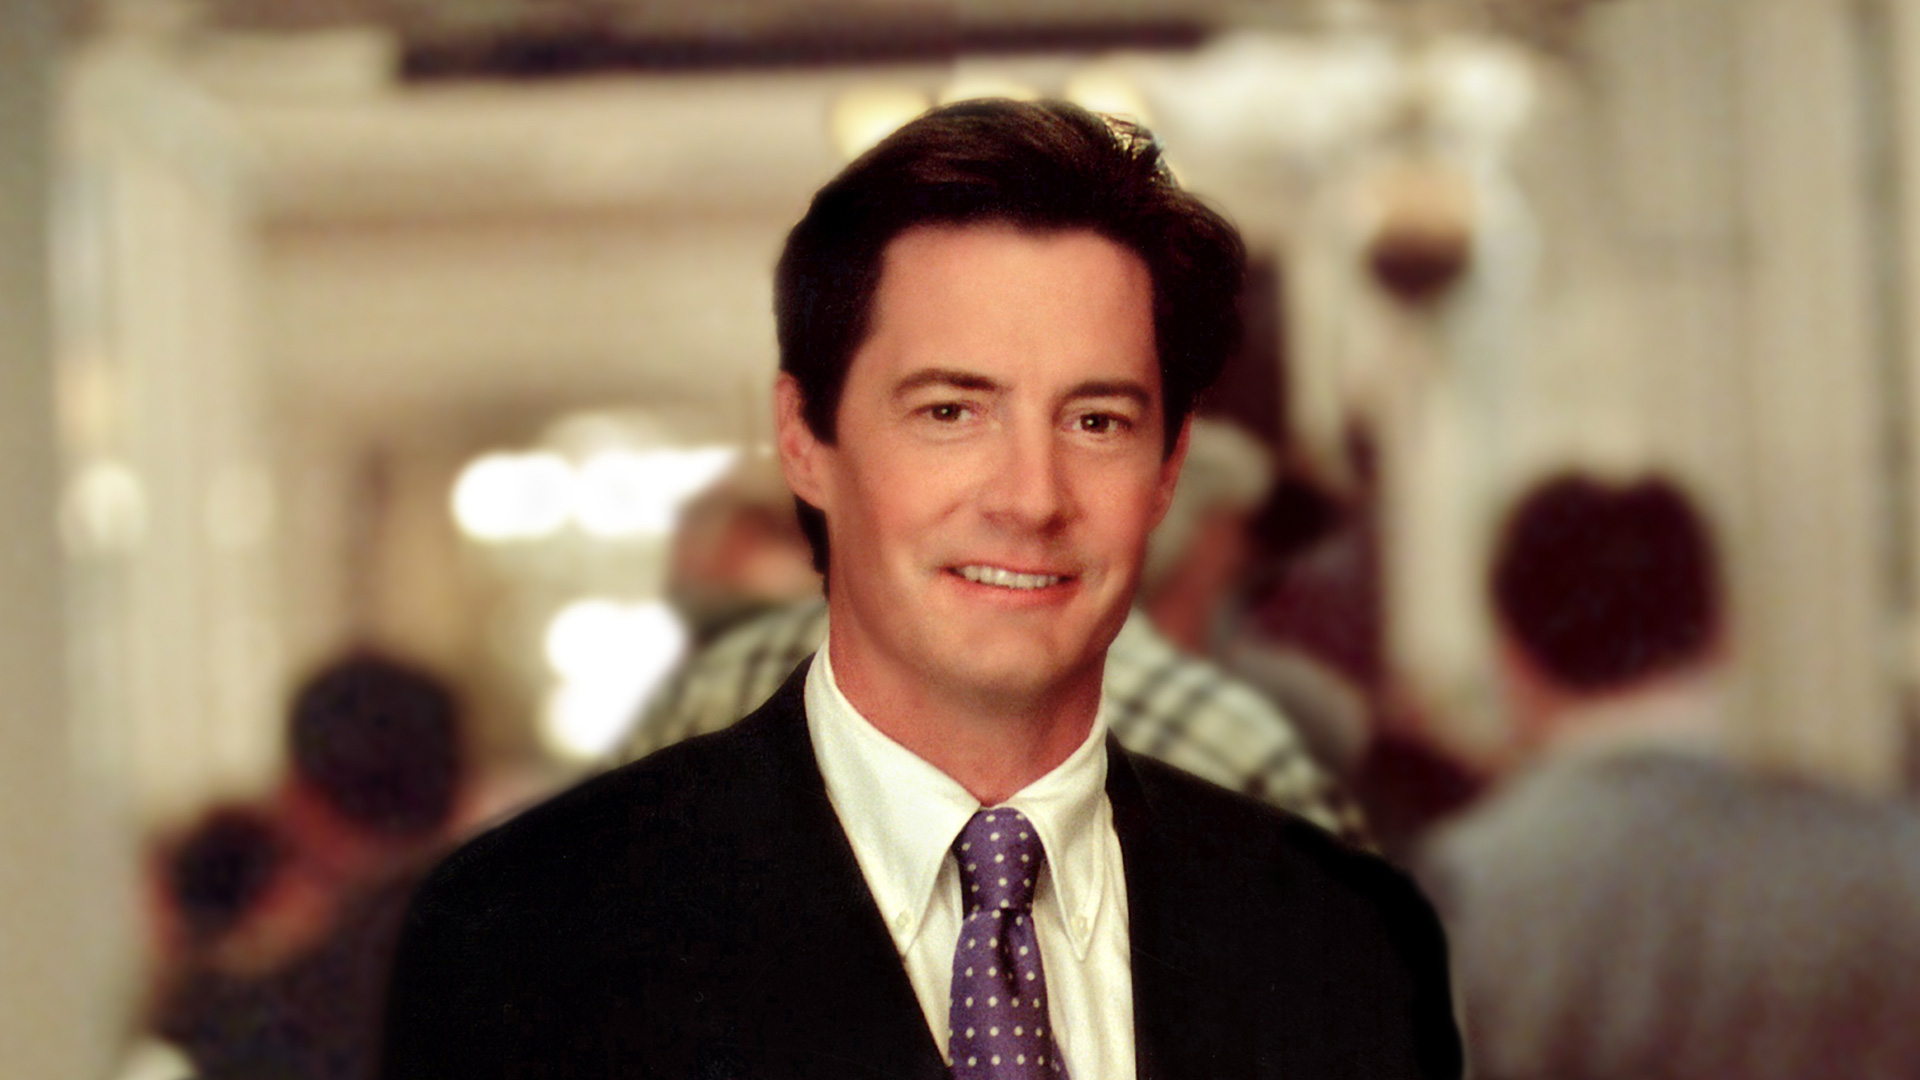 Kyle maclachlan sex and the city Nude Photos 41